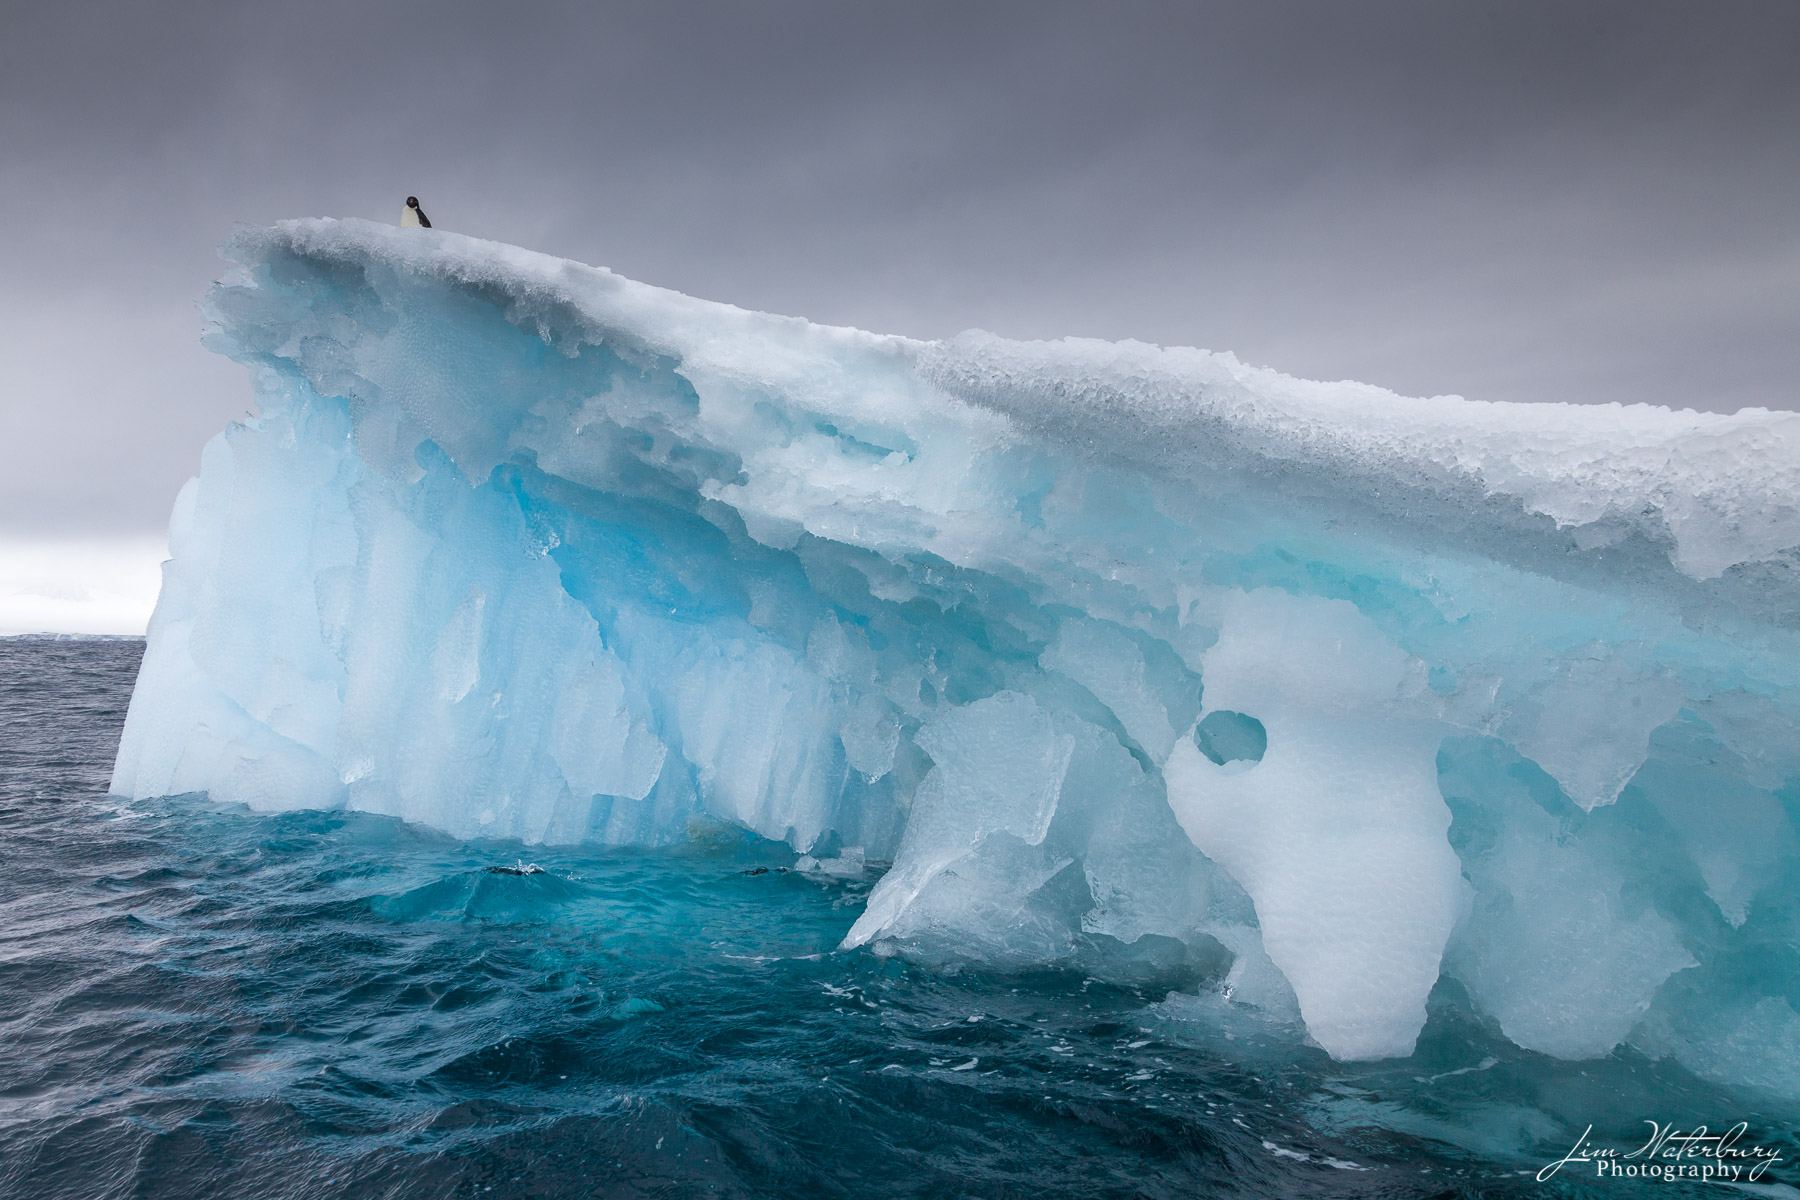 Antarctica, iceberg, penguin, blue water, brown bluff, photo